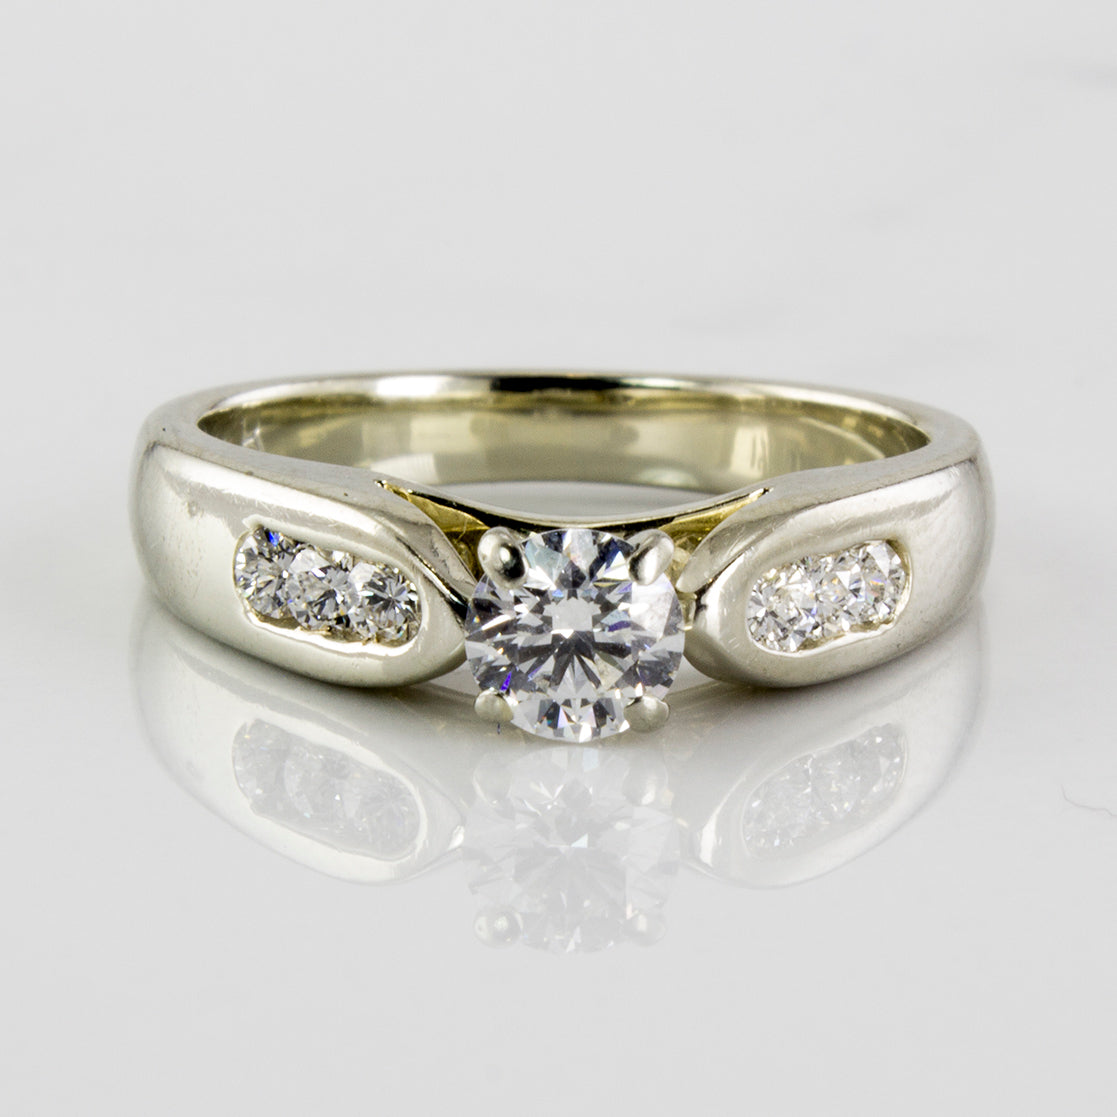 Wide Band Diamond Engagement Ring | 0.42 ctw | SZ 4.75 |